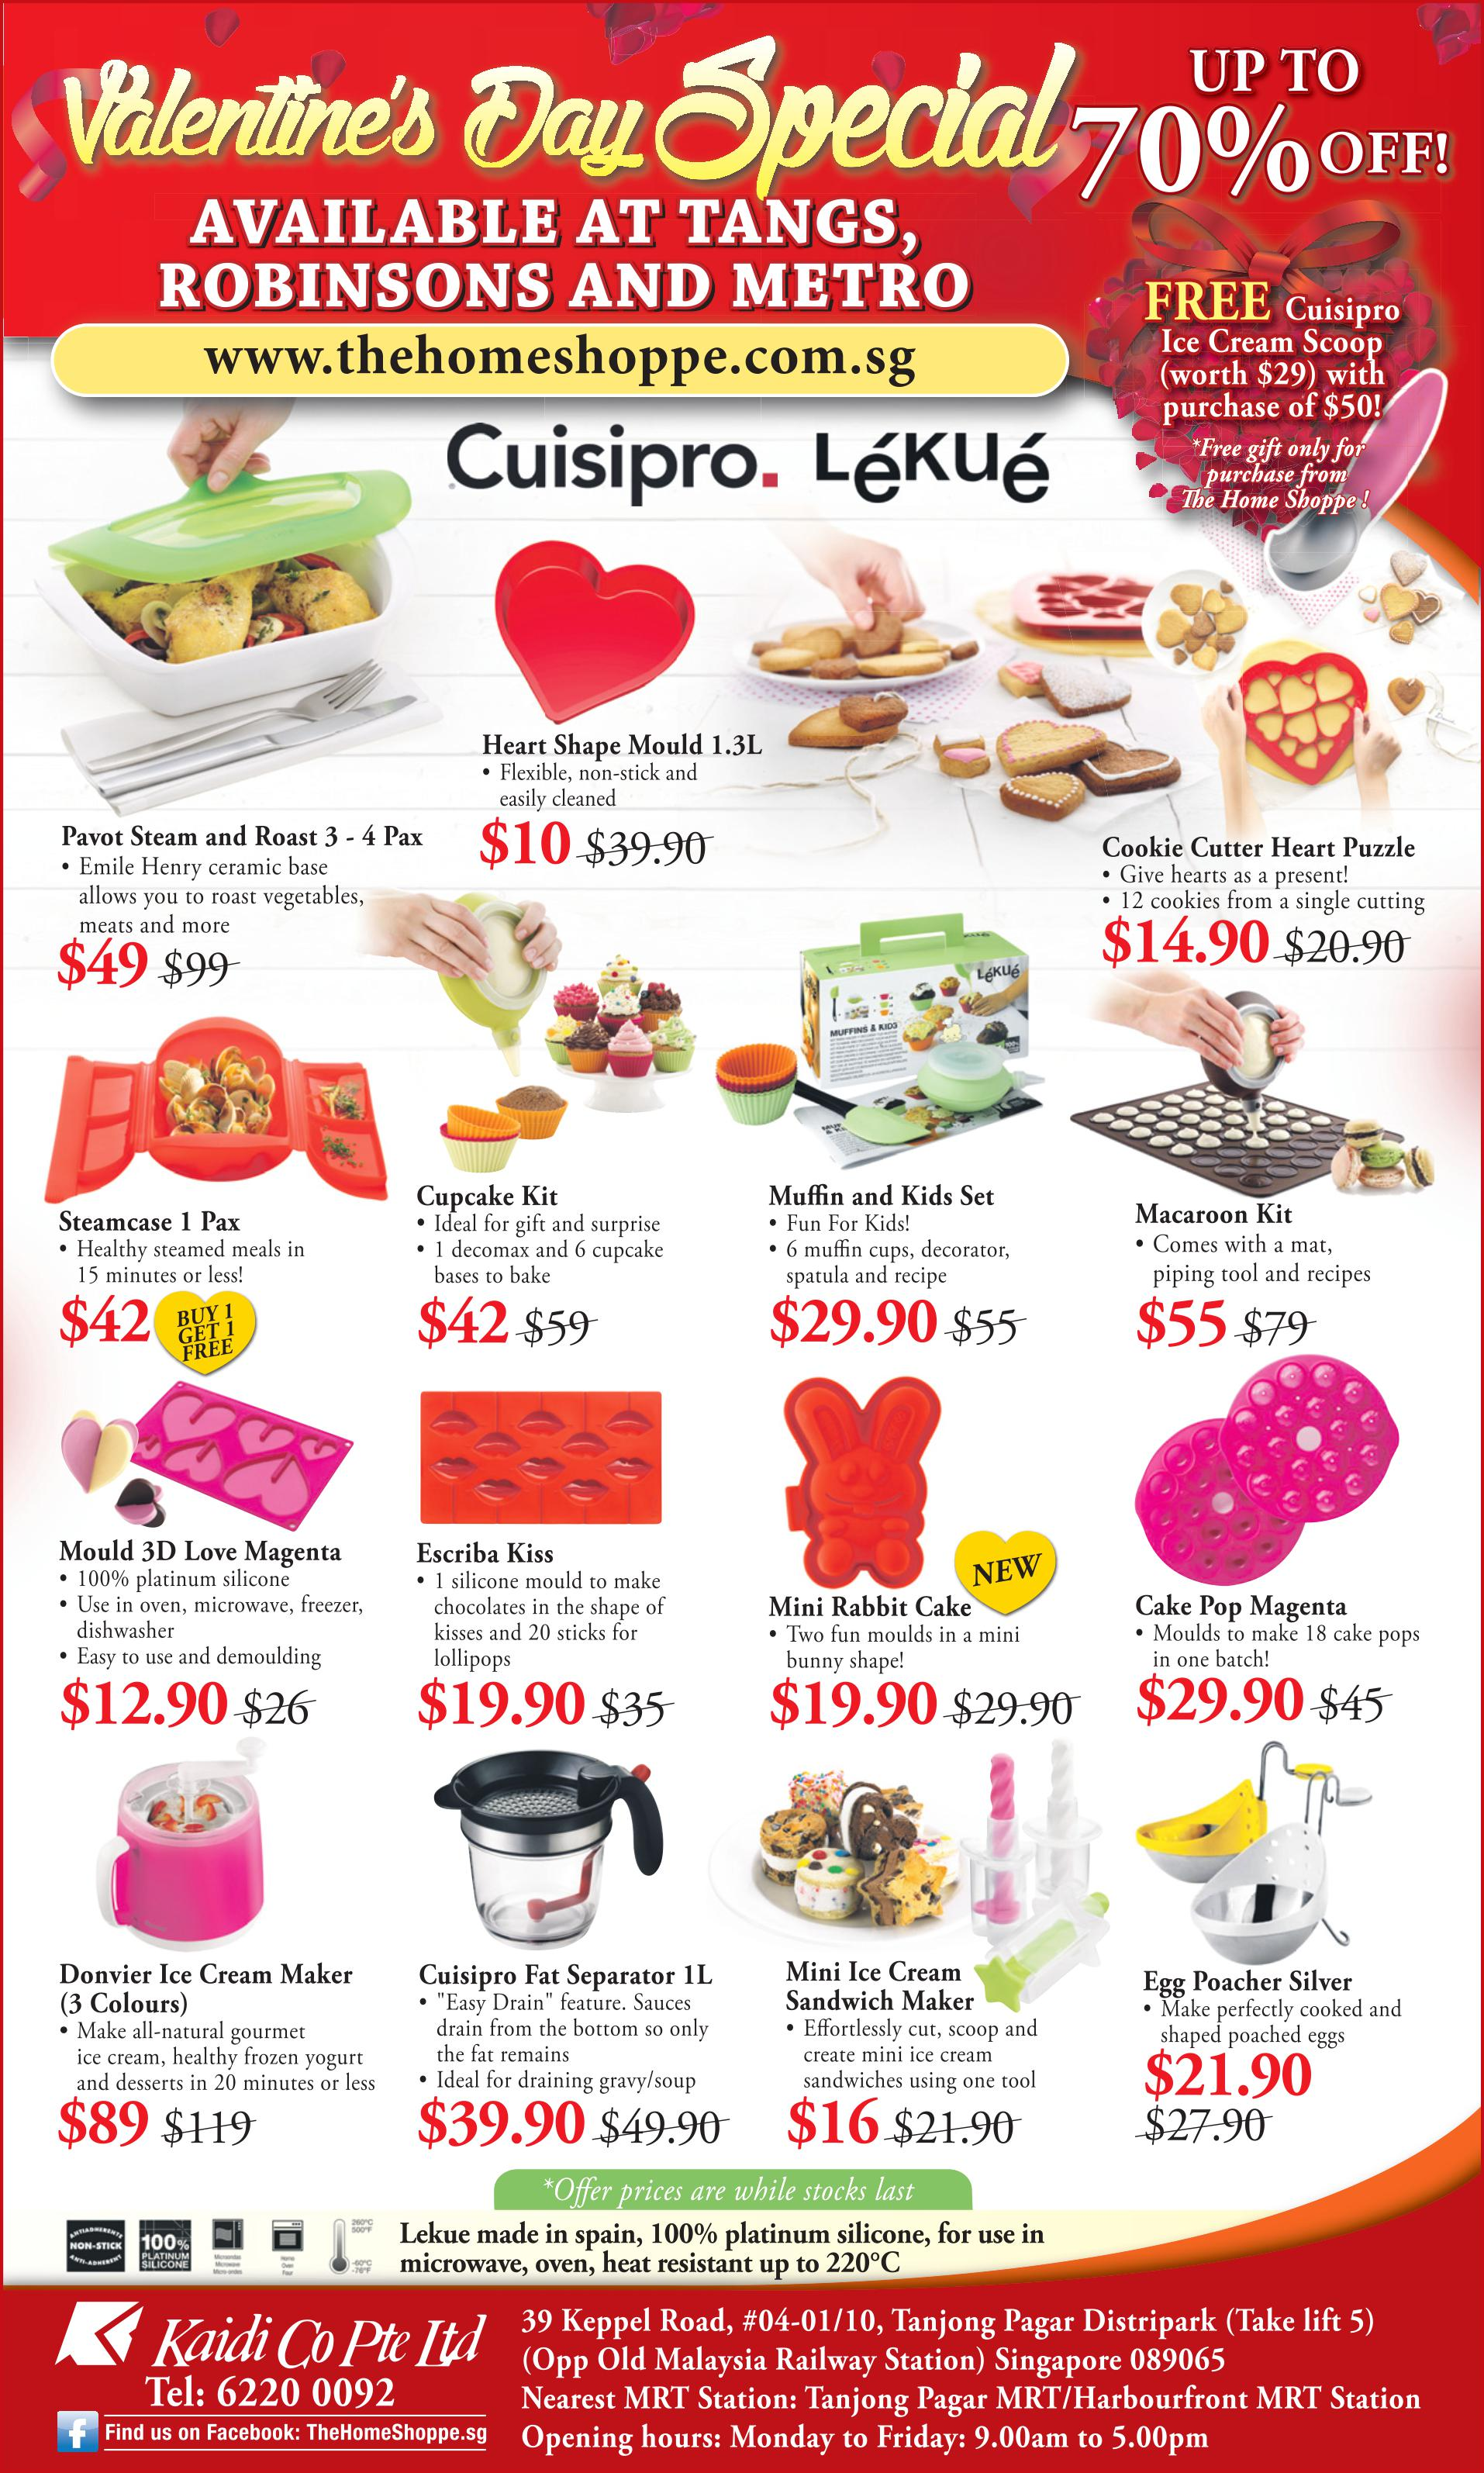 valentine's day bakeware sale lekue and cuisipro 2016